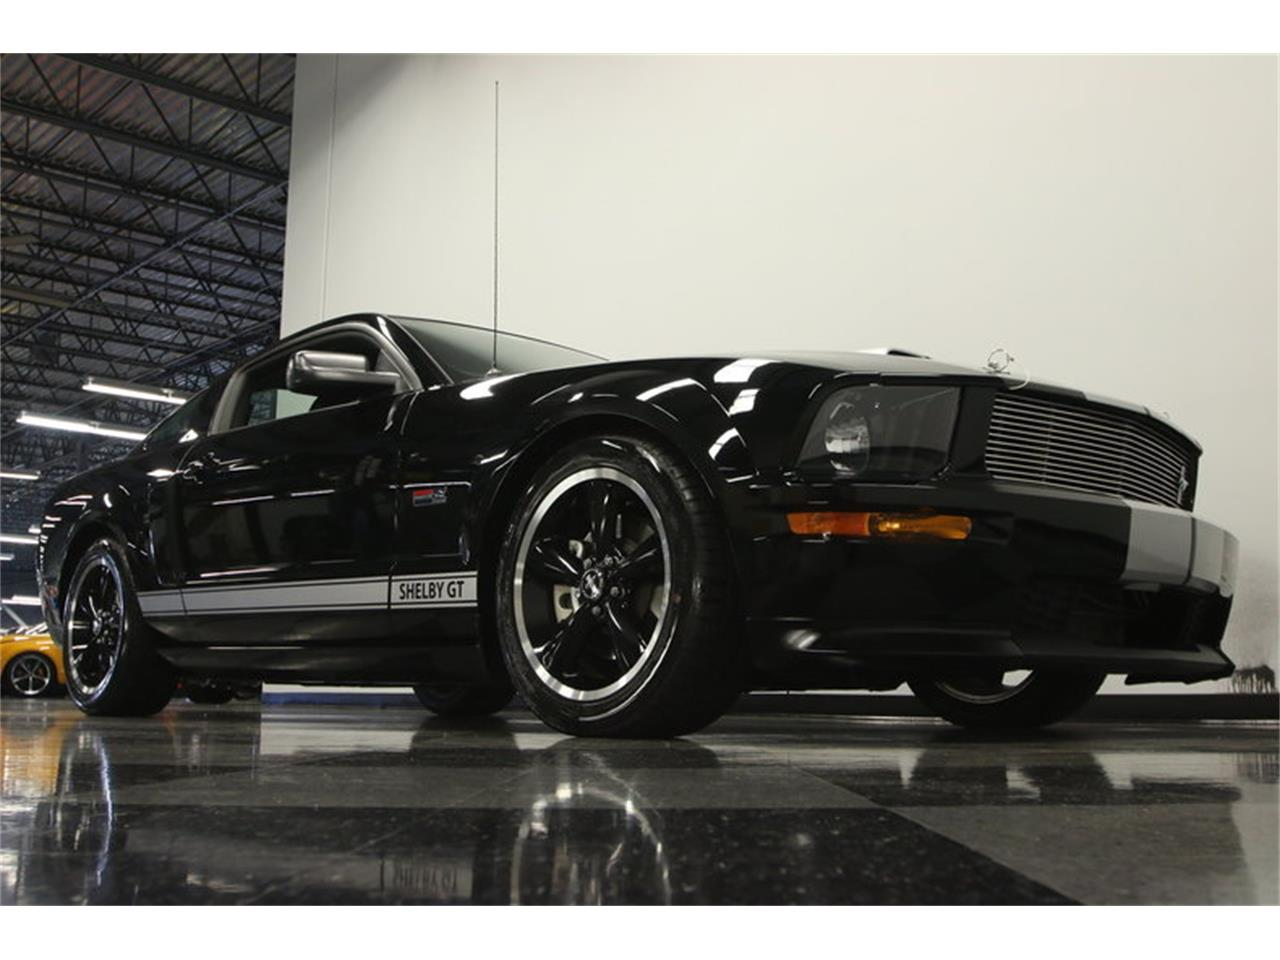 Large Picture of '07 Shelby GT located in Lutz Florida - $29,995.00 Offered by Streetside Classics - Tampa - MO4G